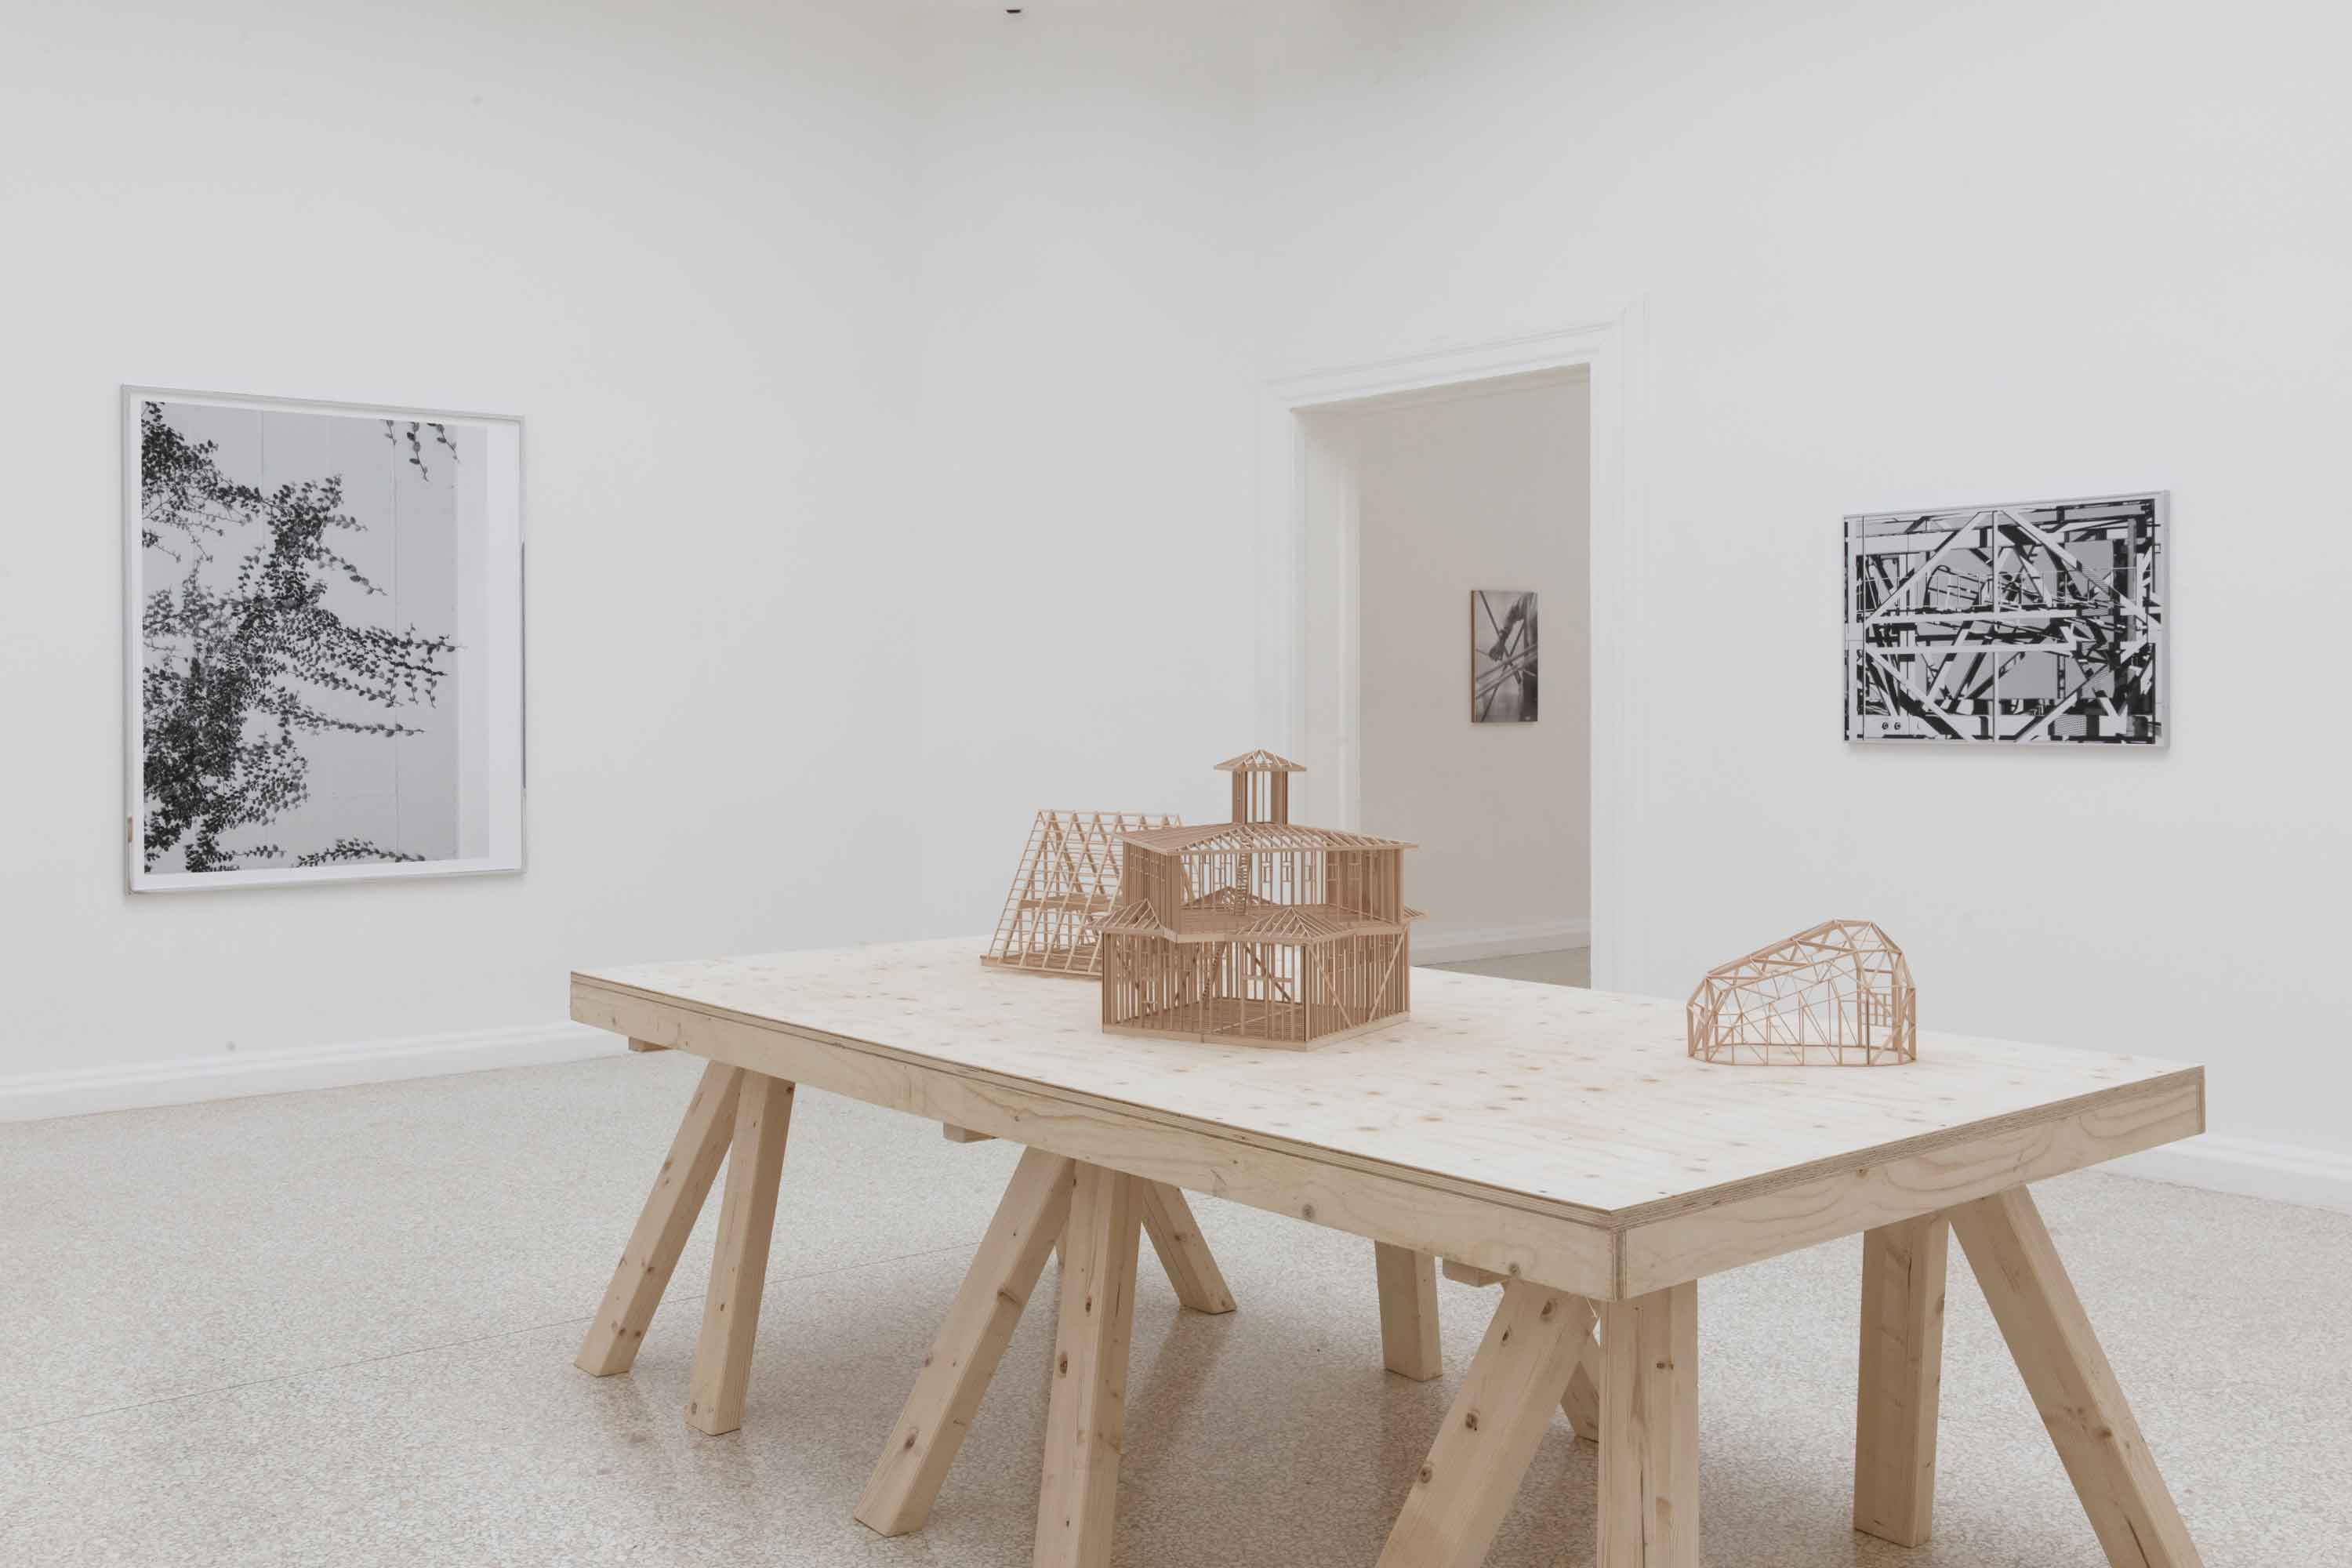 Installation view of AMERICAN FRAMING. Courtesy the Pavilion of the United States at the 17th International Architecture Exhibition at La Biennale di Venezia.